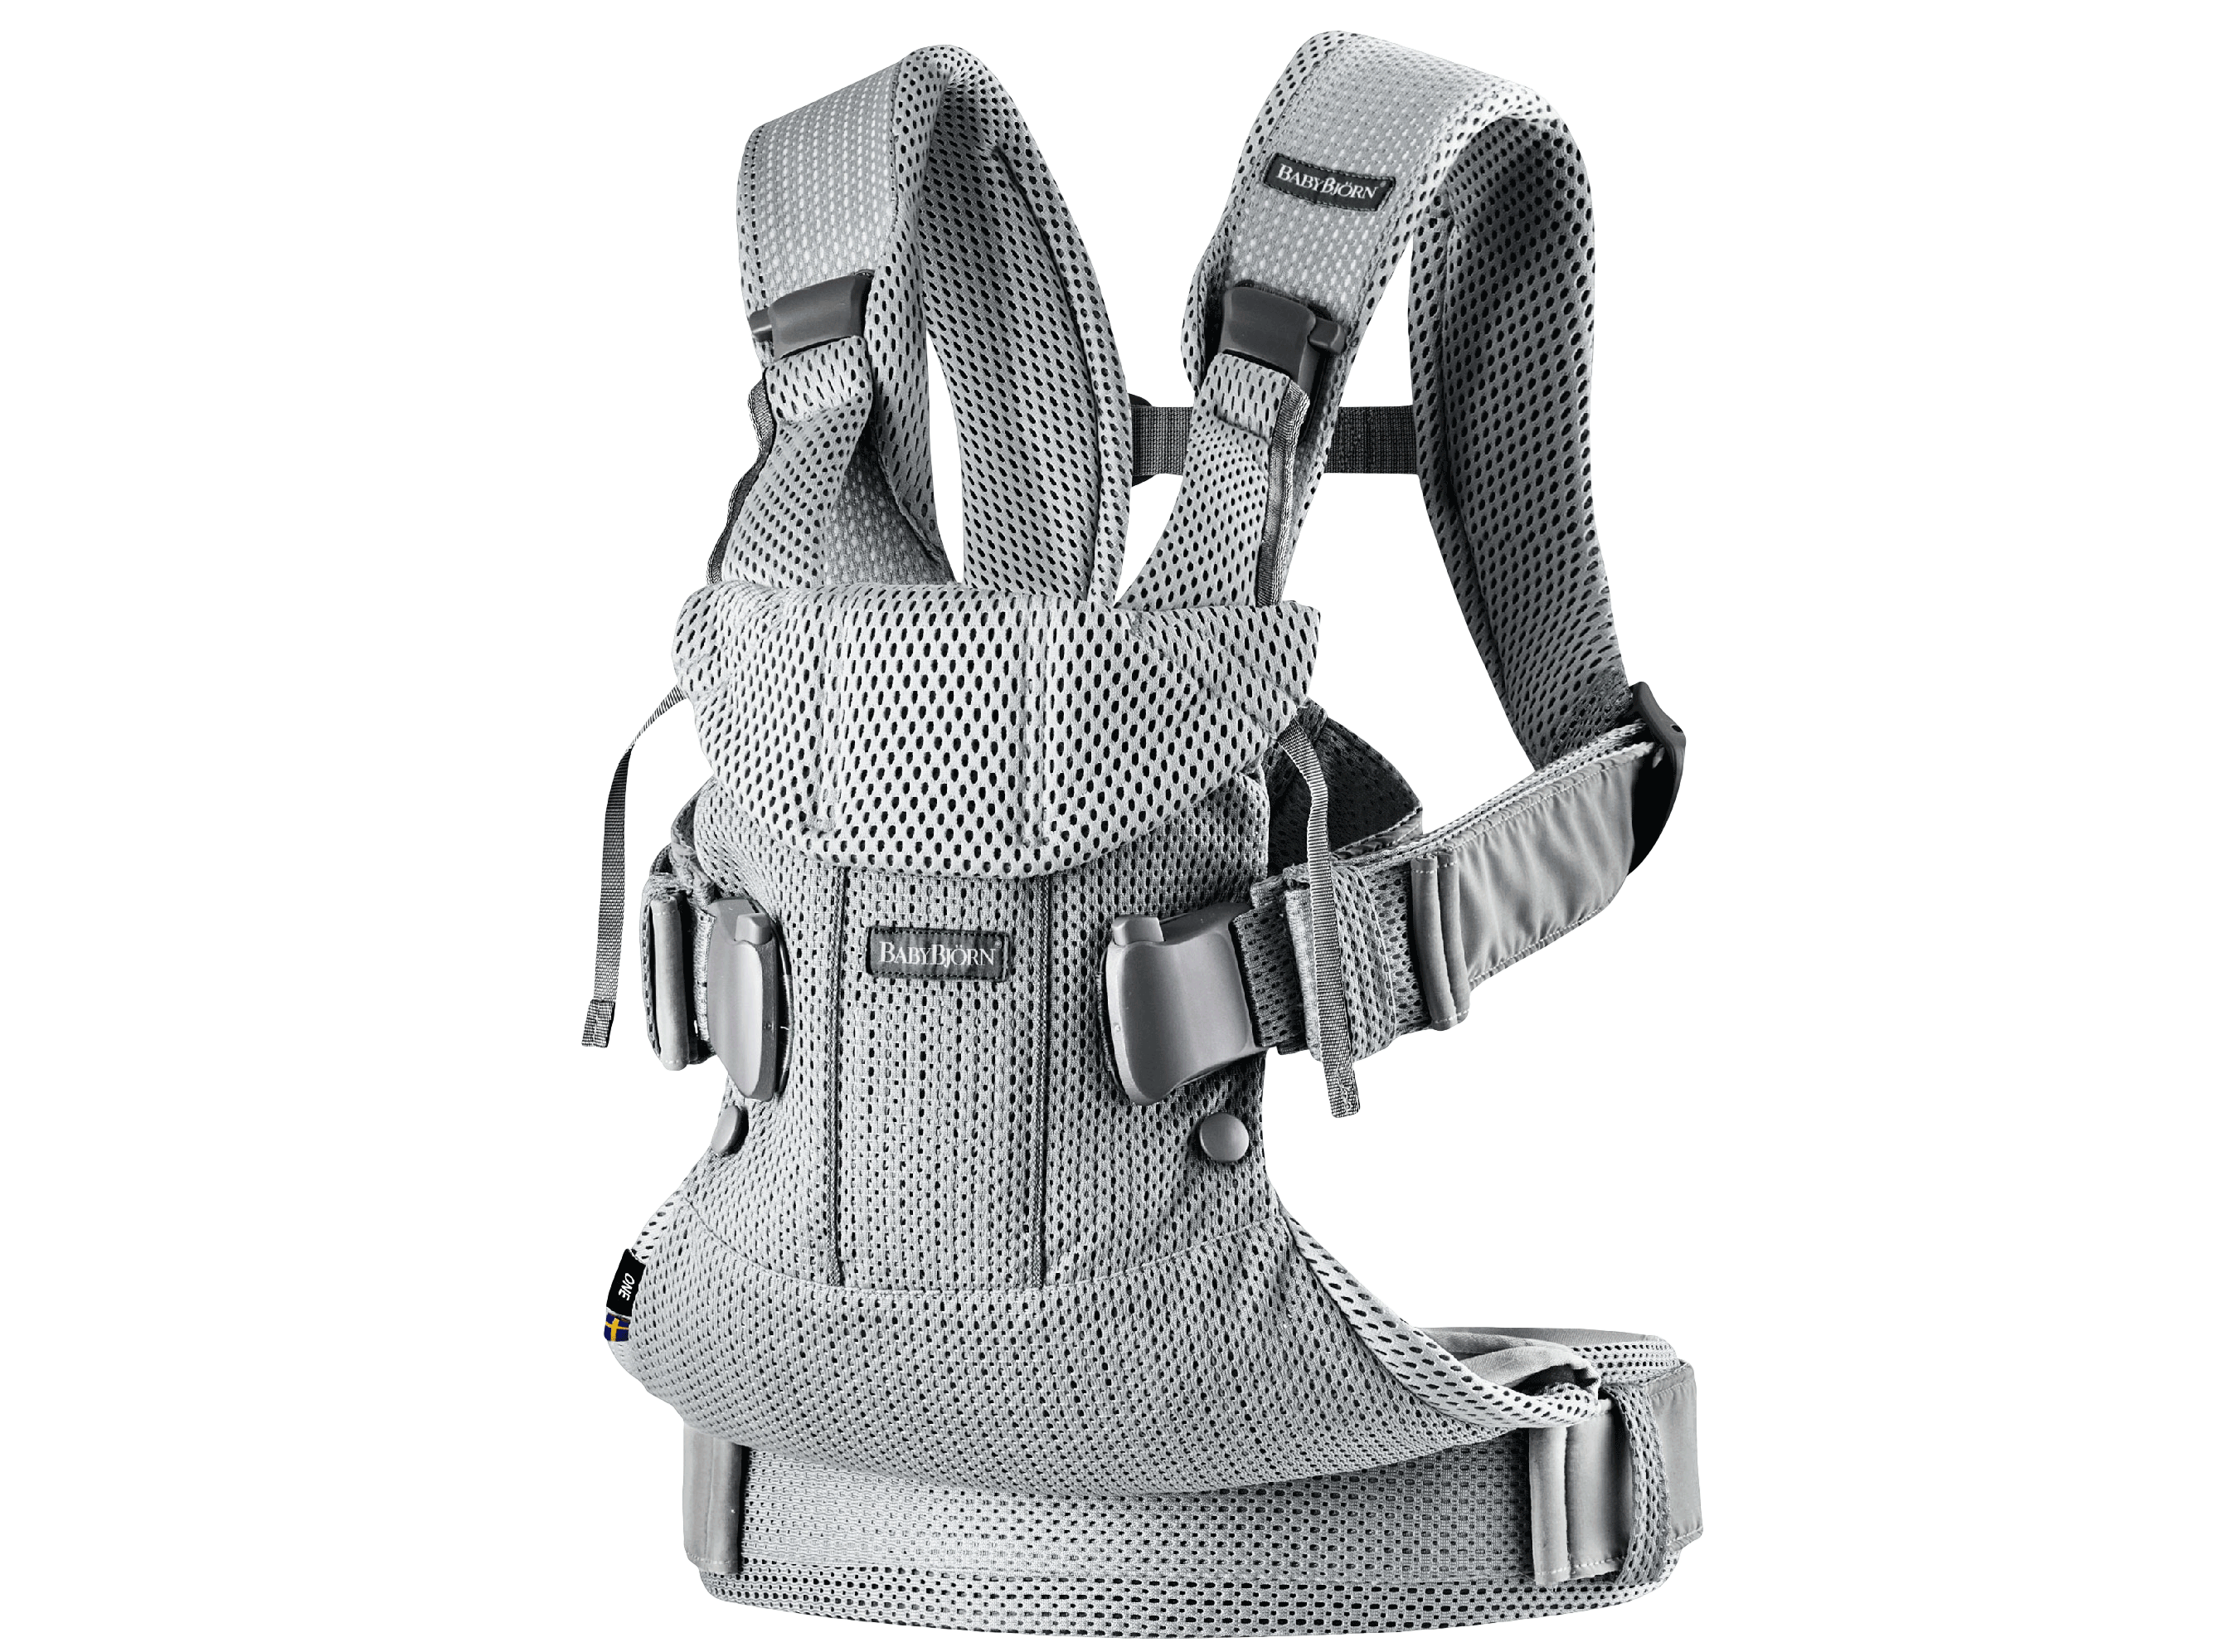 Baby Carrier One Air in silver mesh, an ergonomic, soft and flexible baby carrier that can be used from new born to 3 years old, including front facing and back carrying.